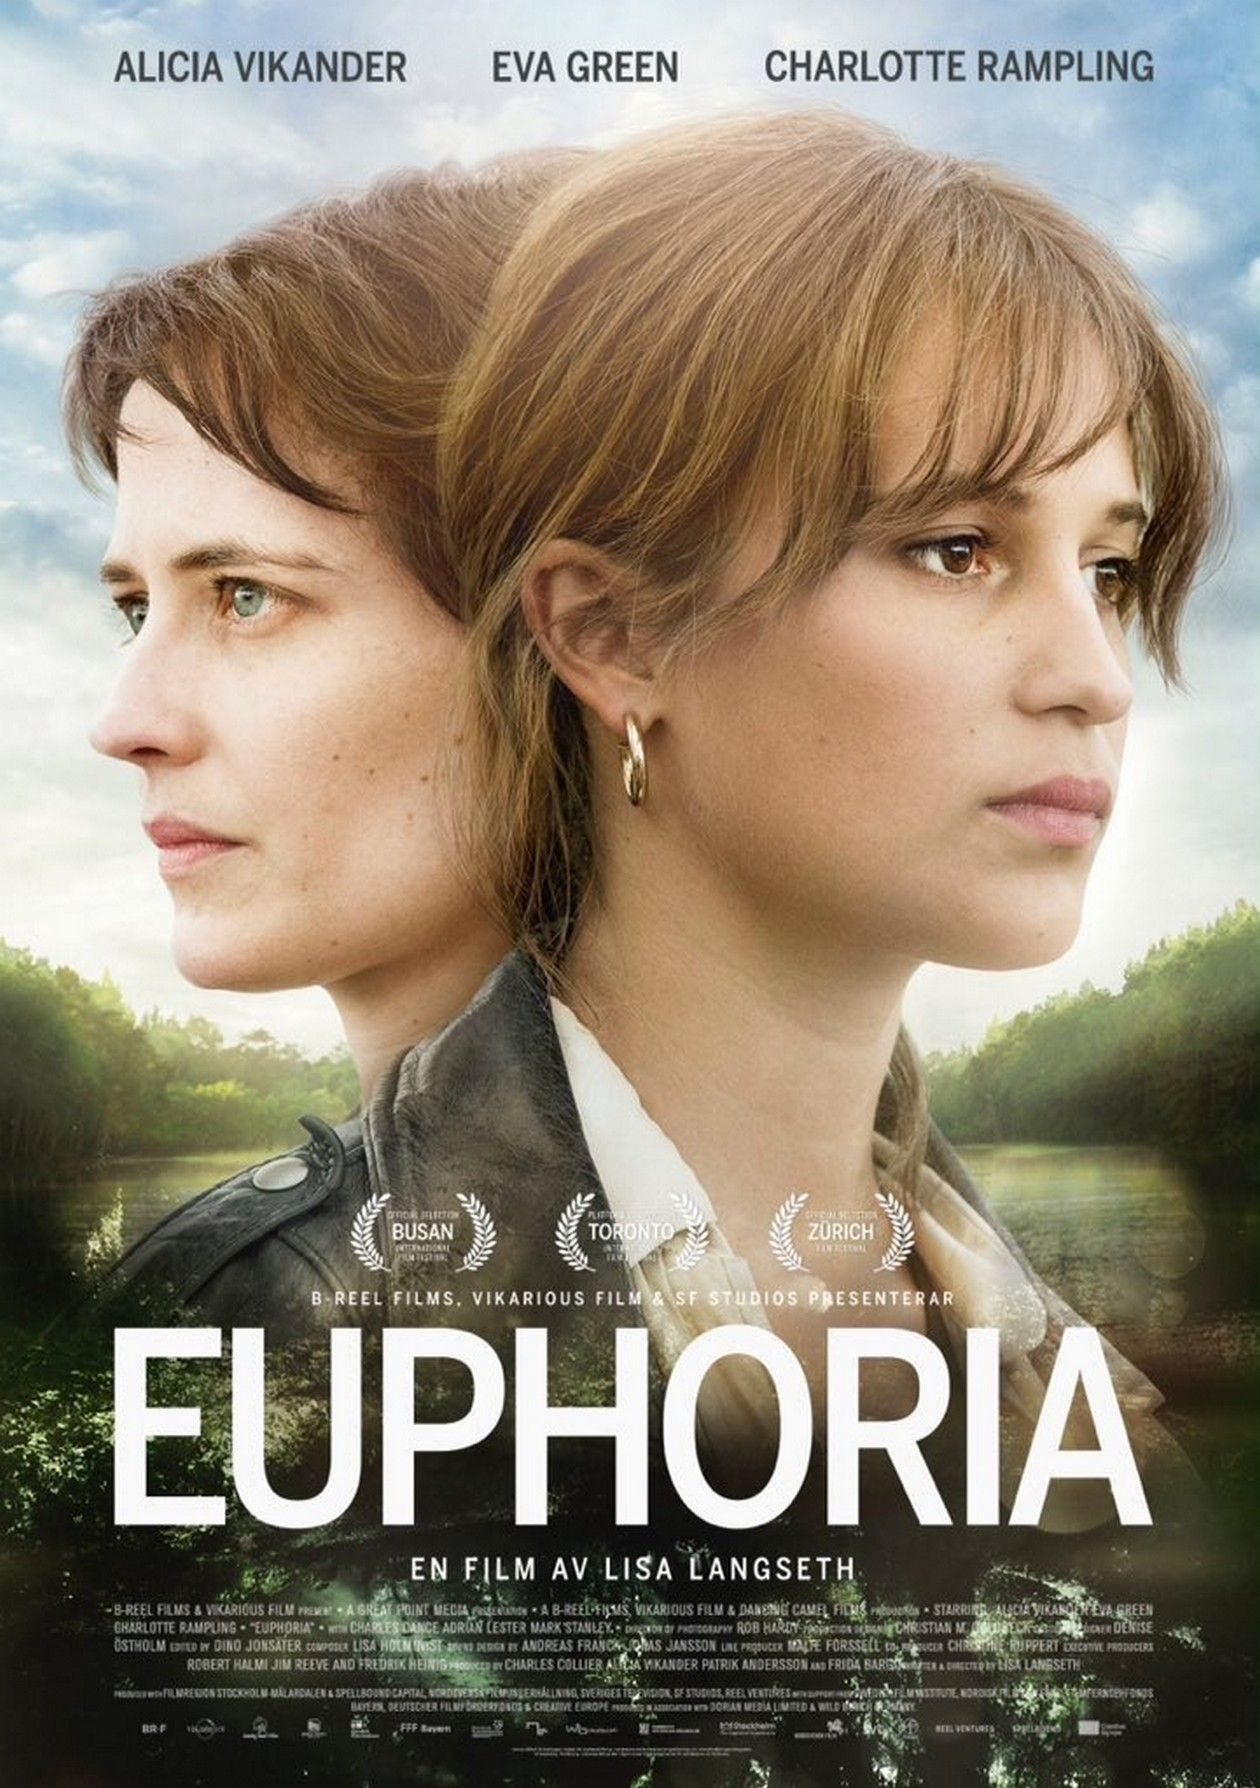 Alicia Vikander / Eva Green actresses | Euphoria / Lisa Langseth 2017 Movie Poster Affiche fil8